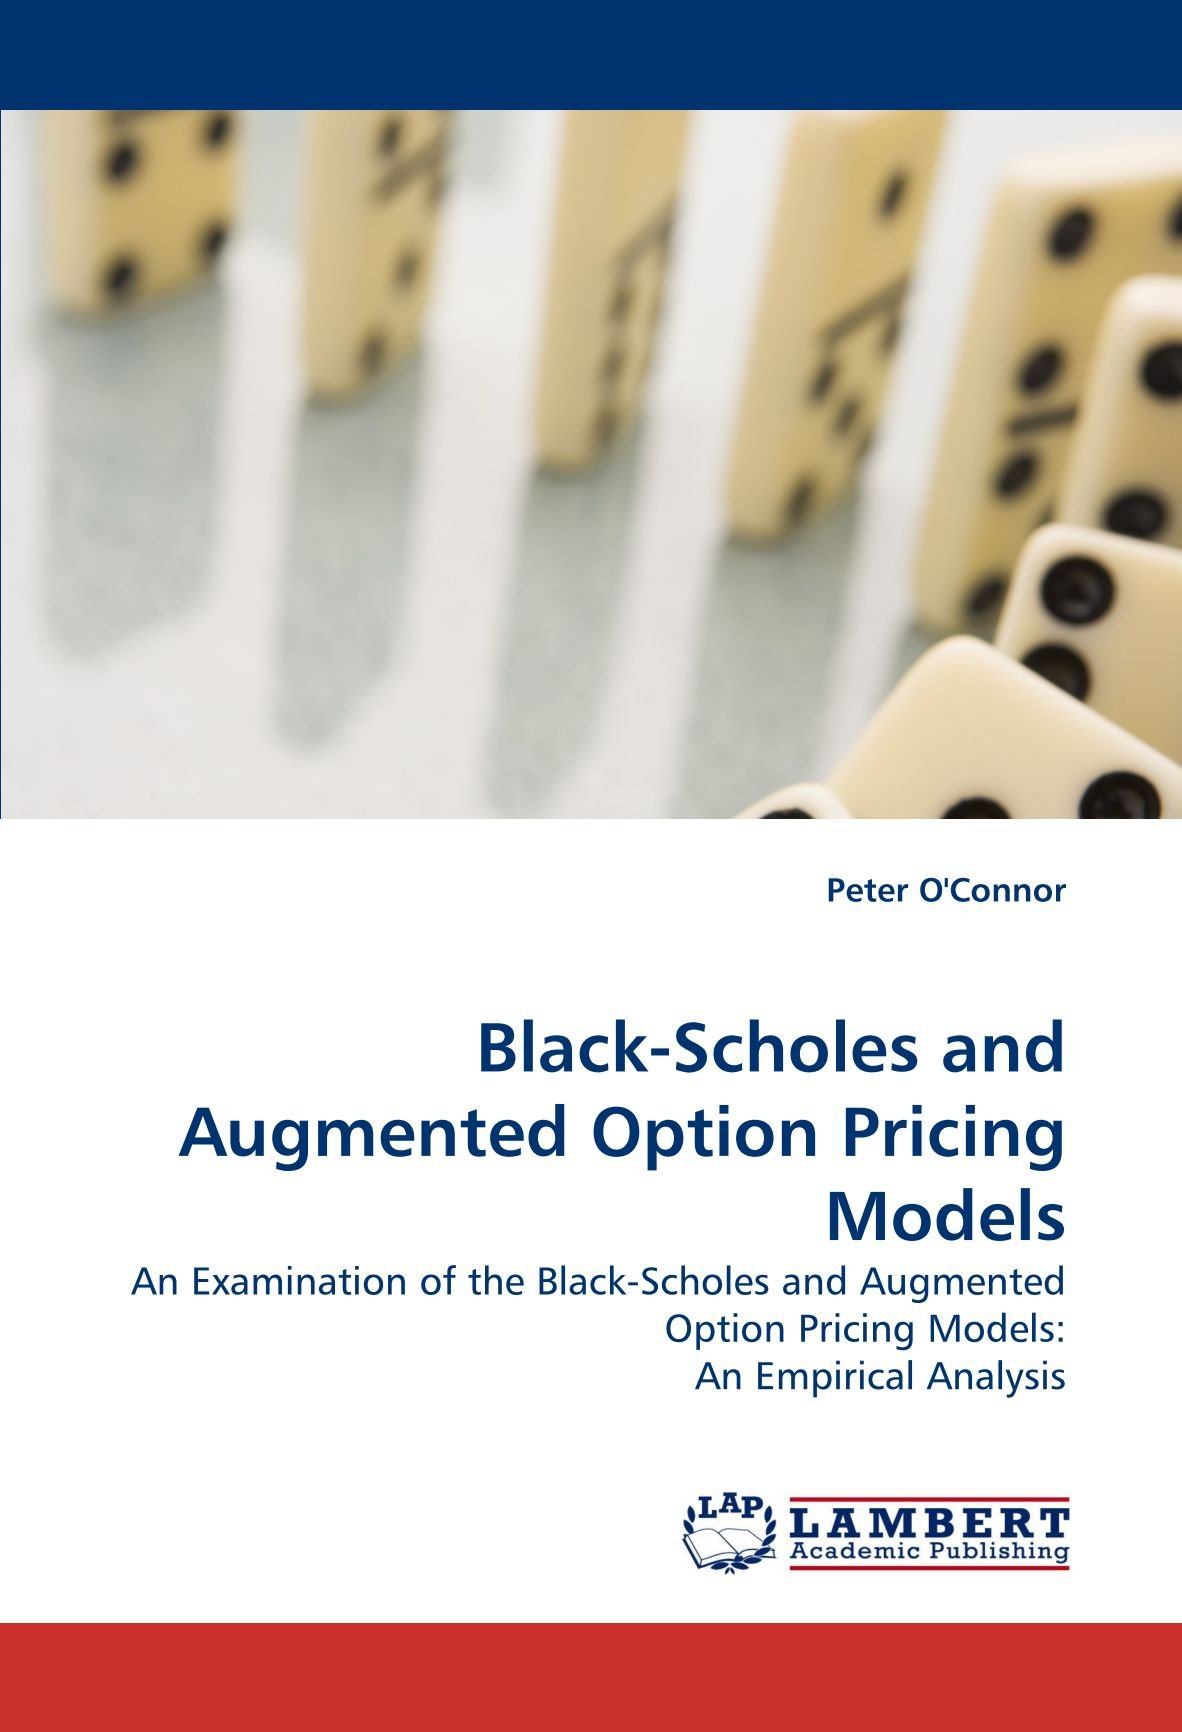 Download Black-Scholes and Augmented Option Pricing Models: An Examination of the Black-Scholes and Augmented Option Pricing Models: An Empirical Analysis pdf